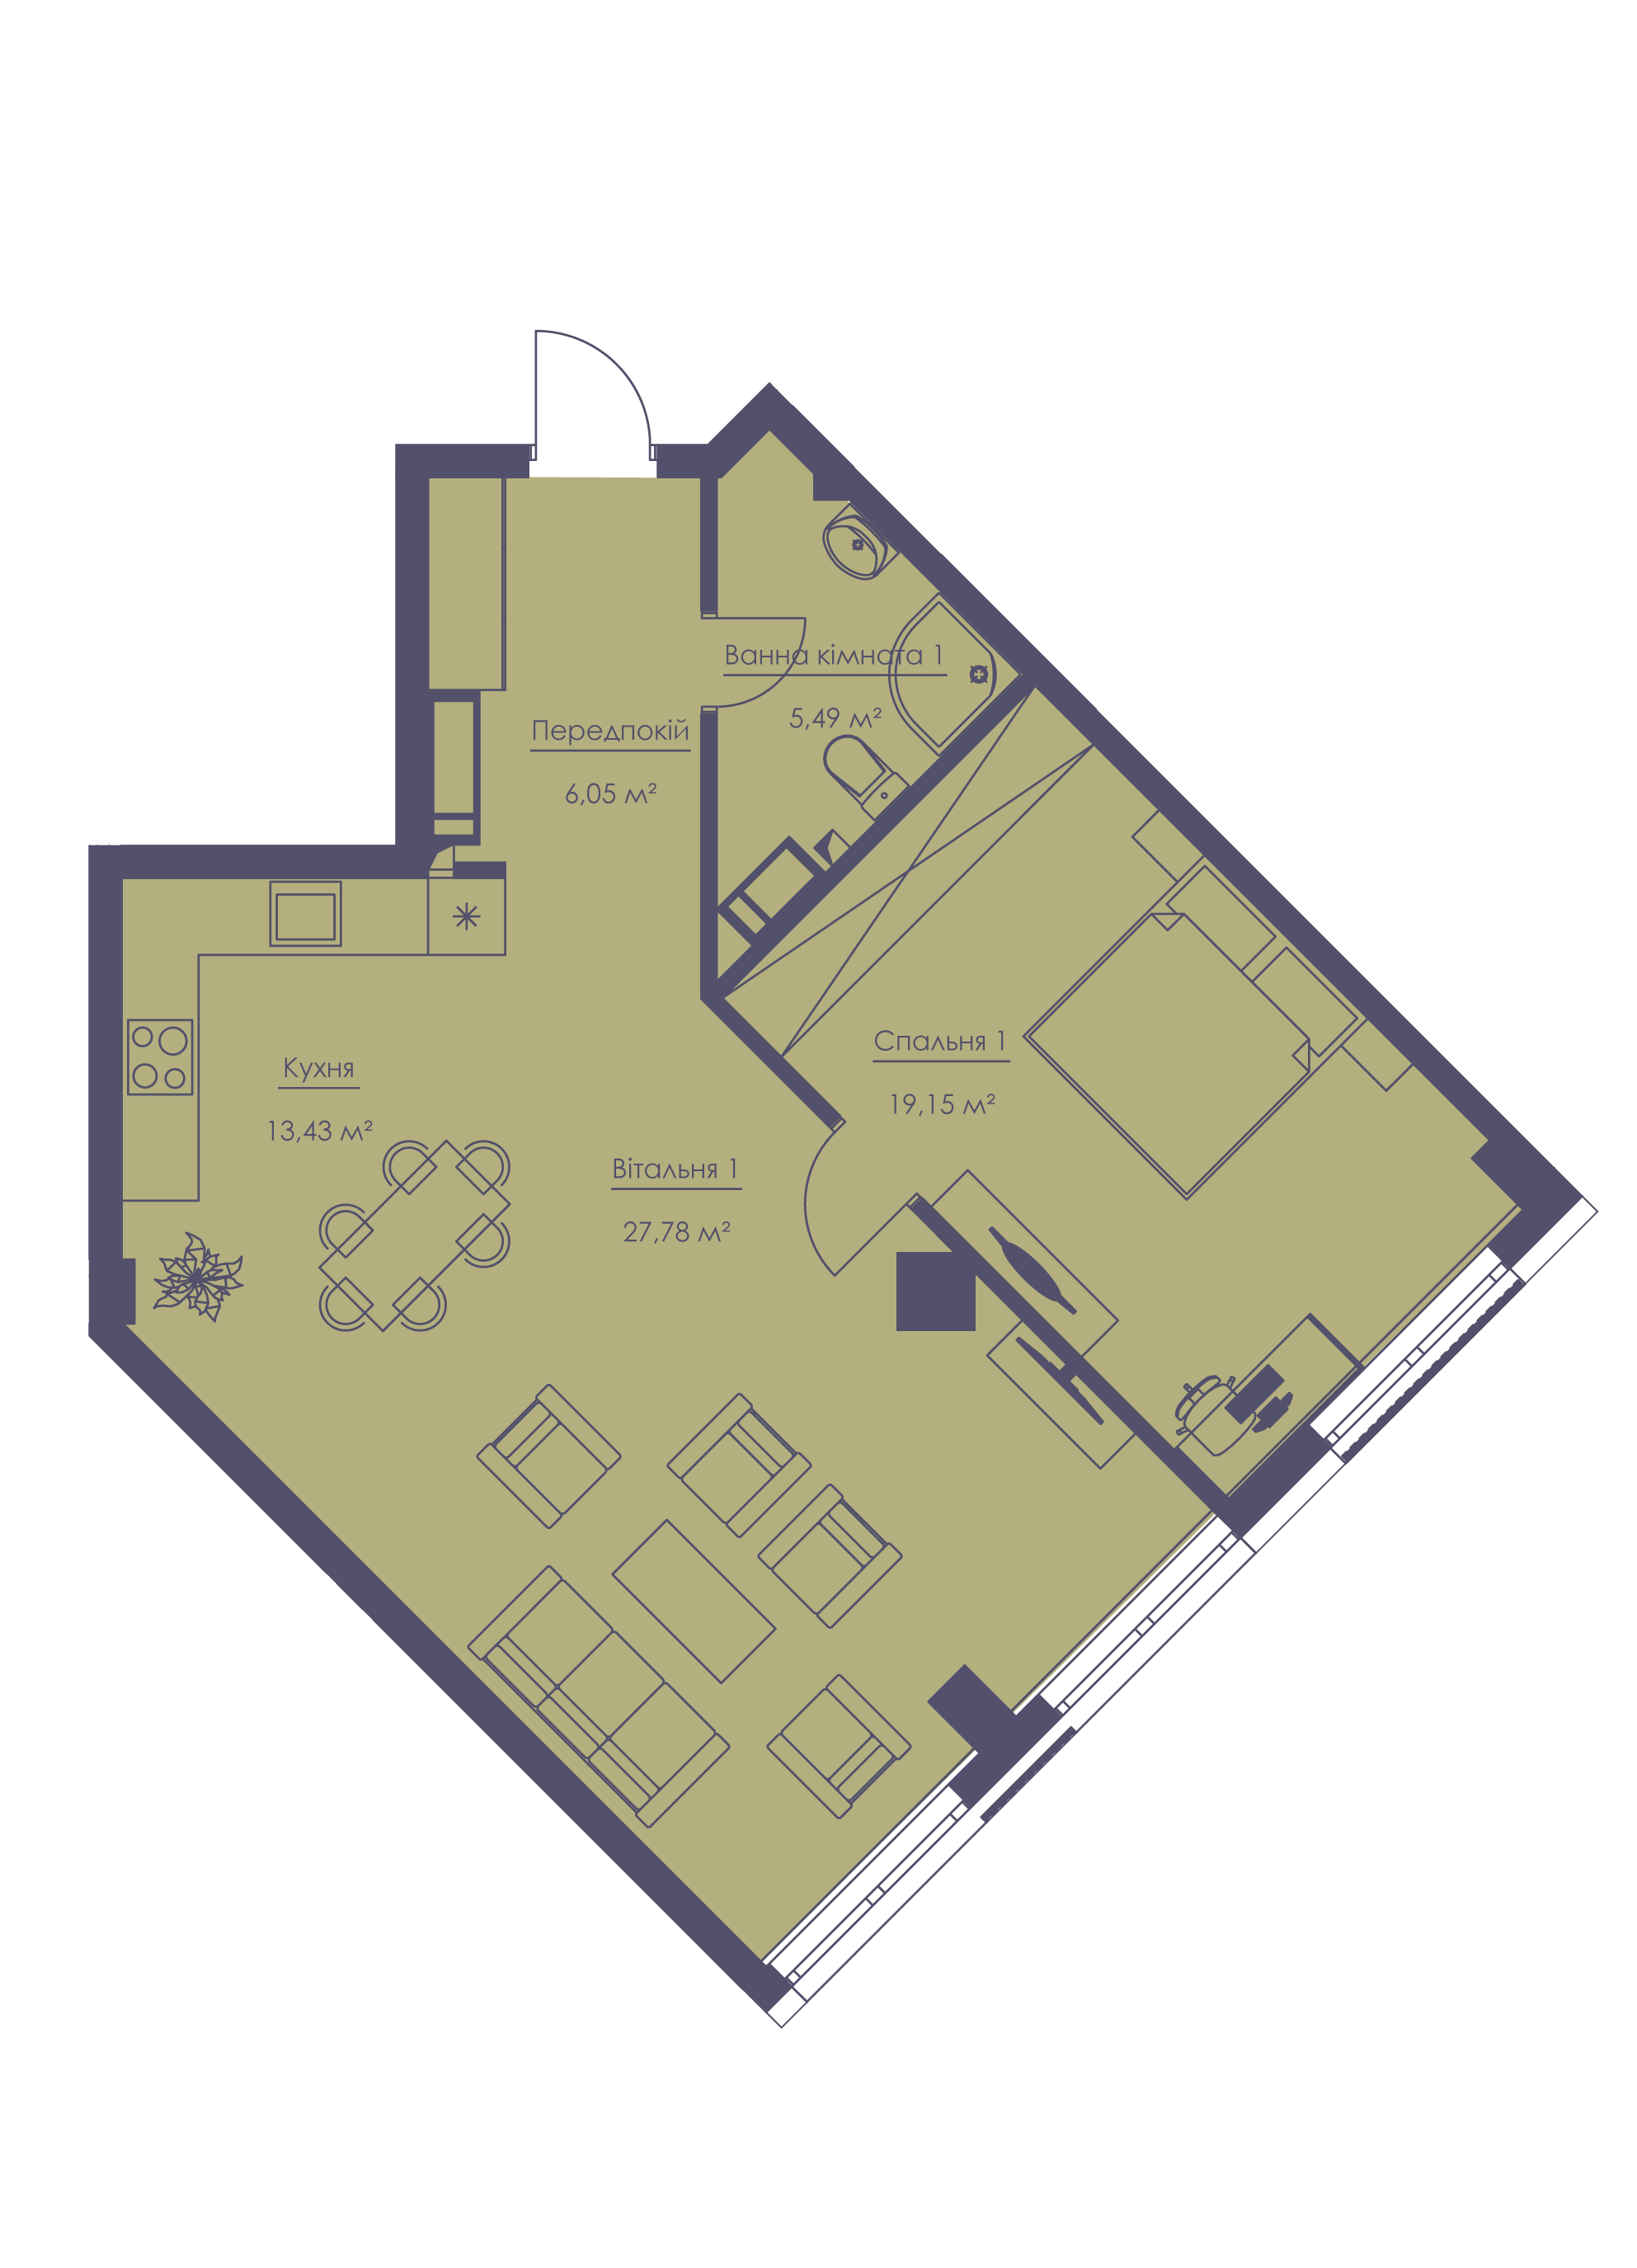 Apartment layout KV_92_2a_1_1_1-1